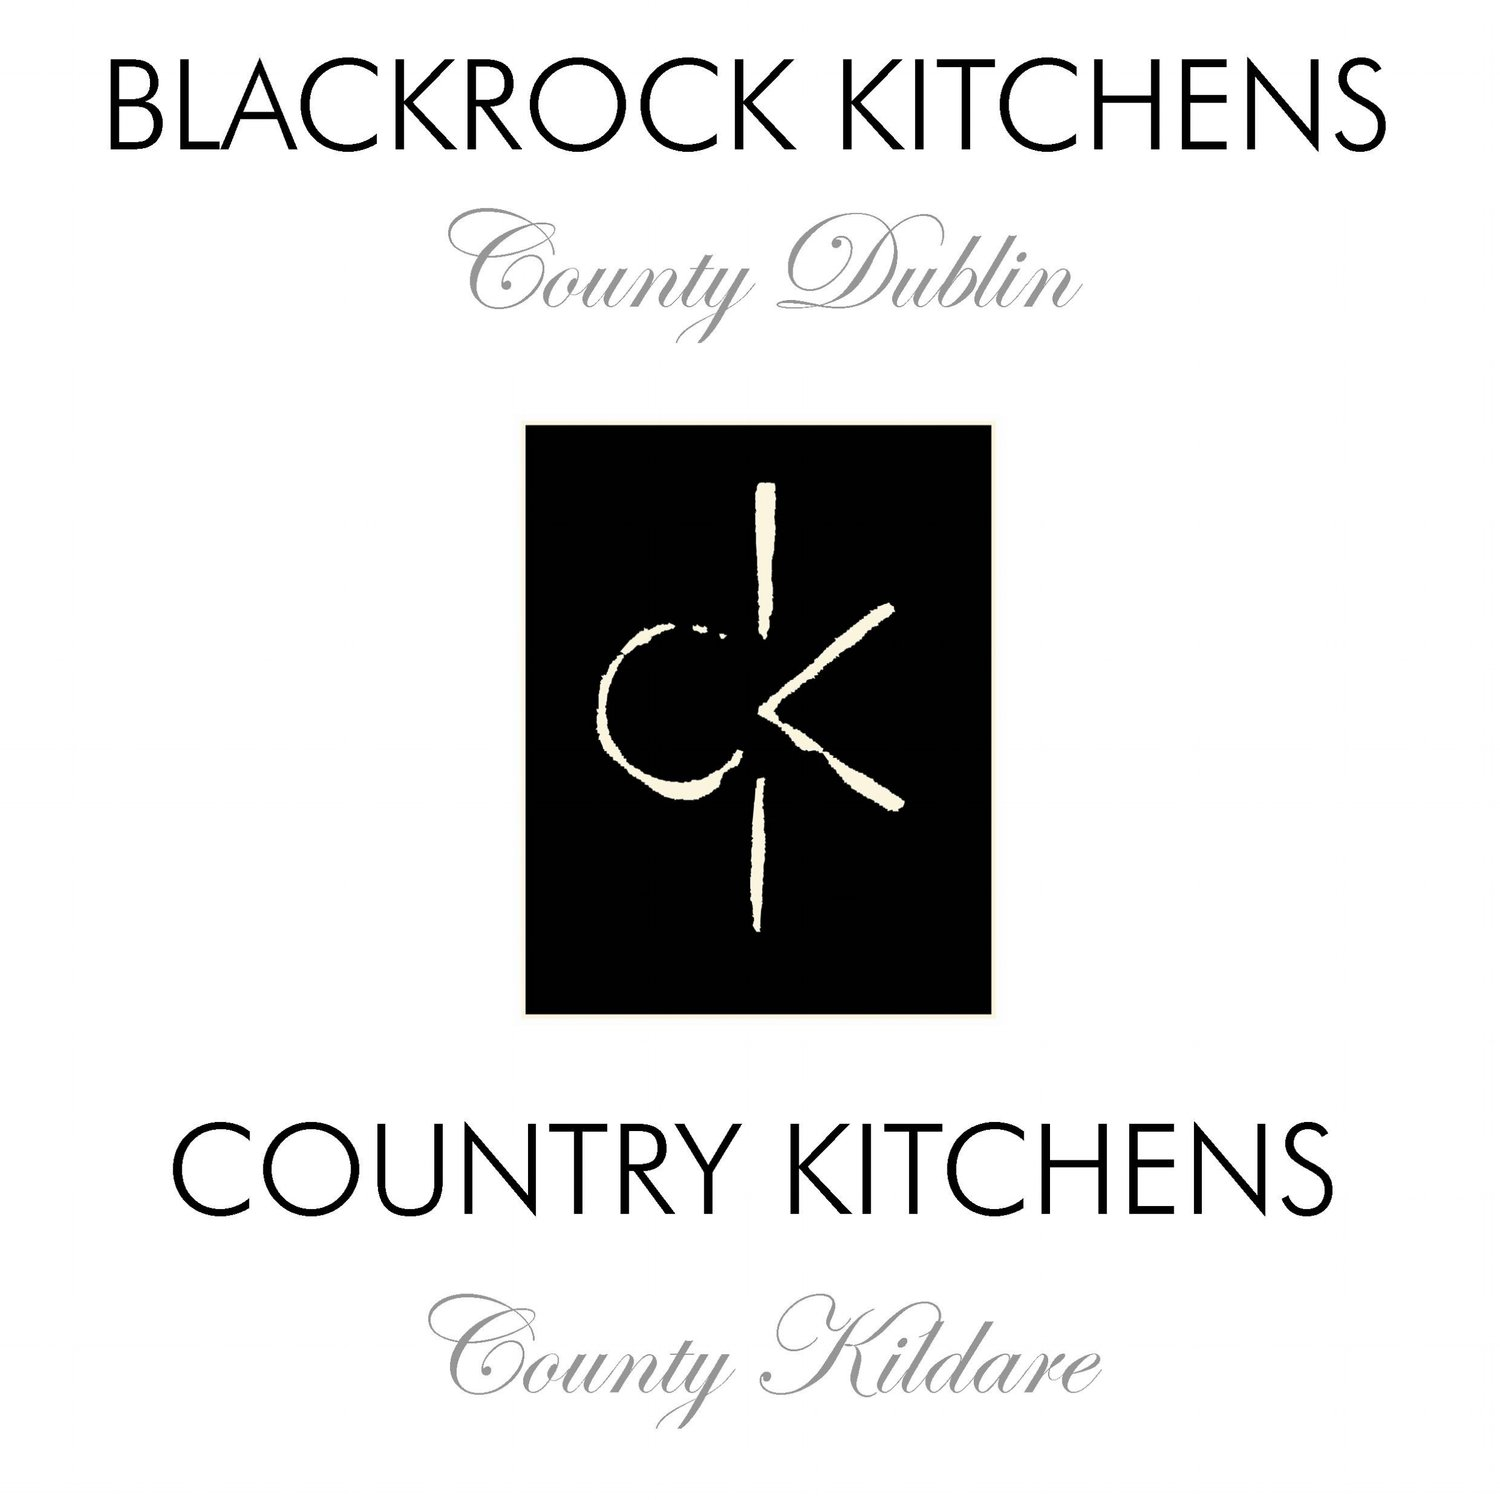 Blackrock Kitchens & Country Kitchens